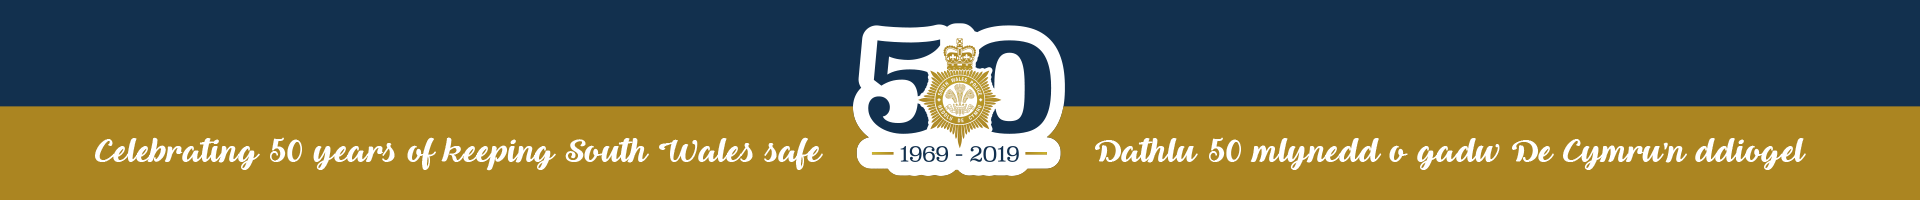 South Wales Police 50 year anniversary